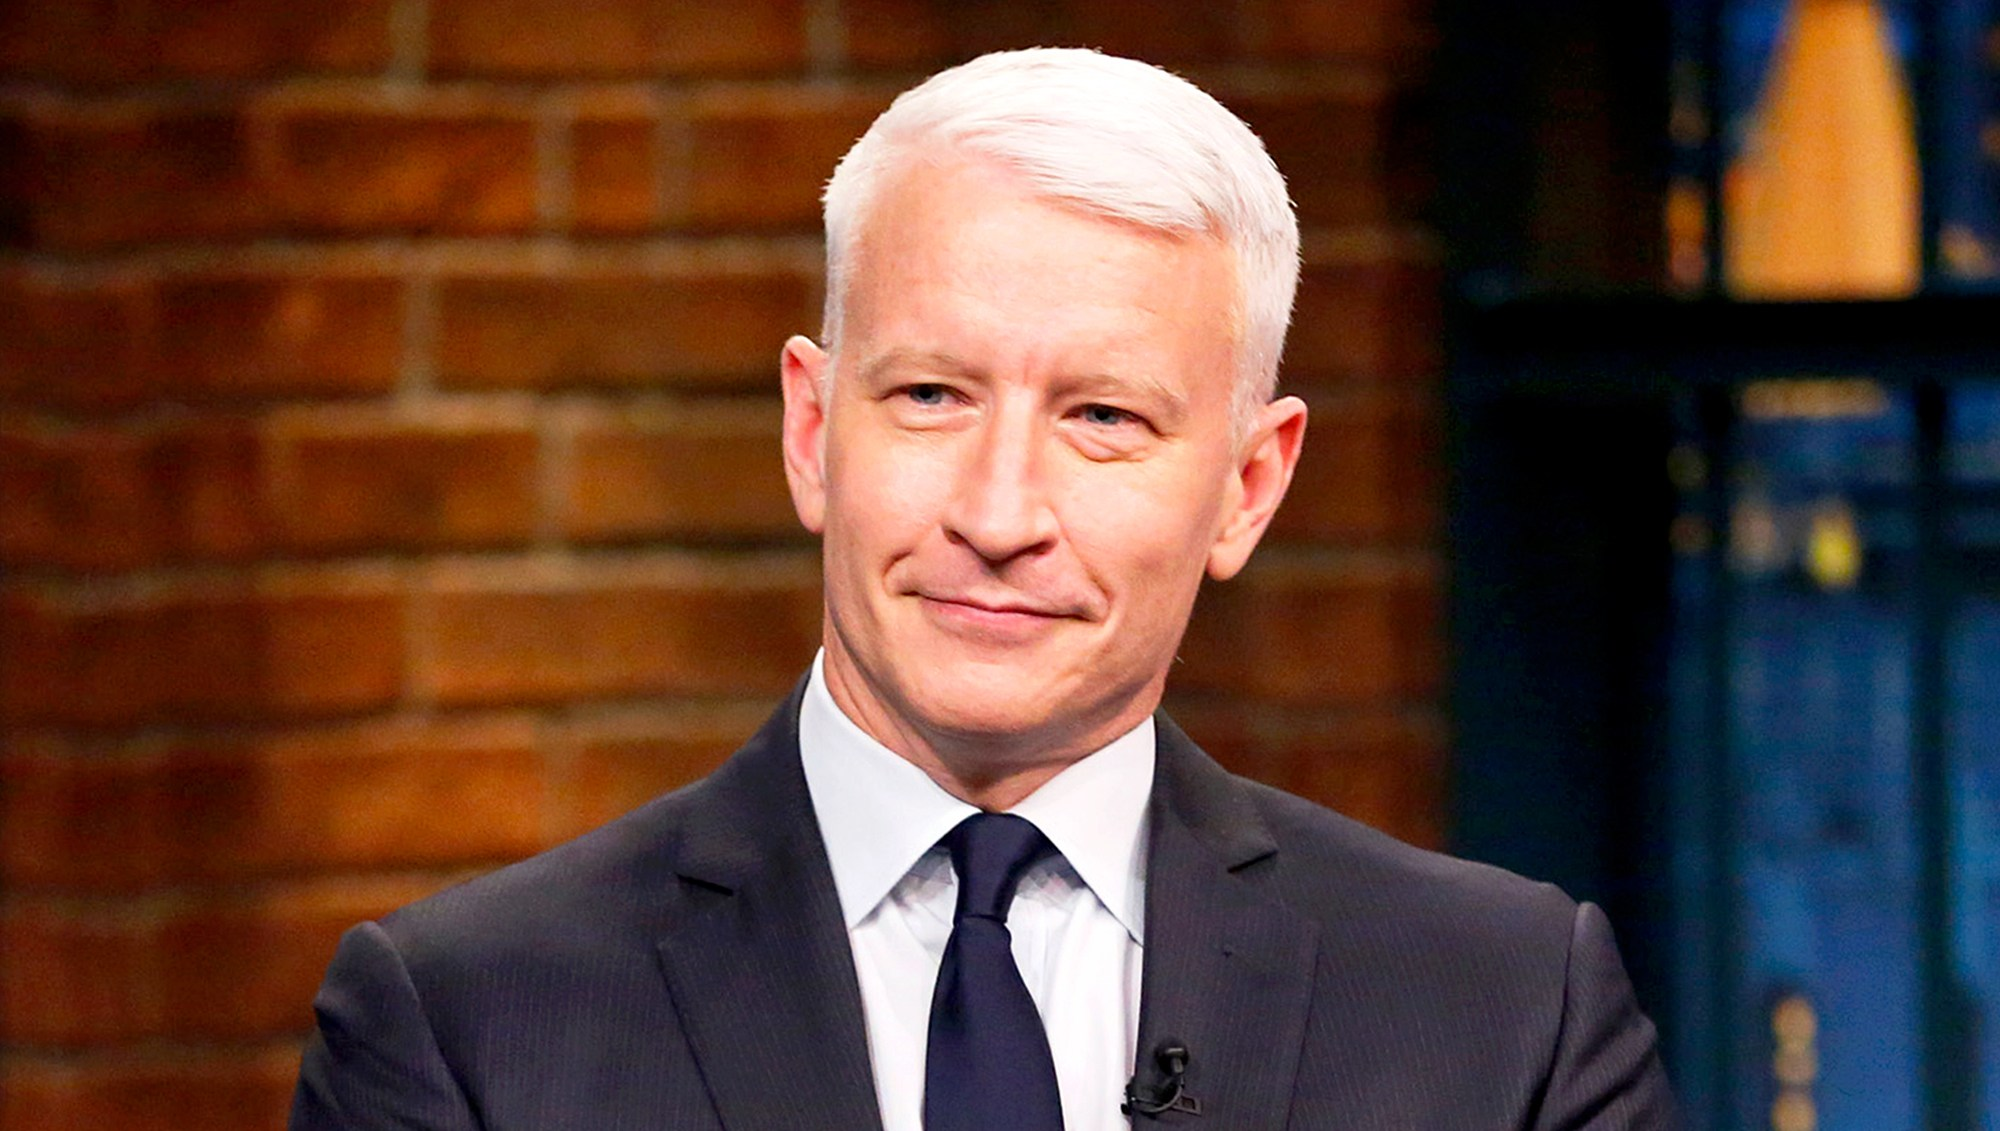 Anderson Cooper on 'Late Night with Seth Meyers'